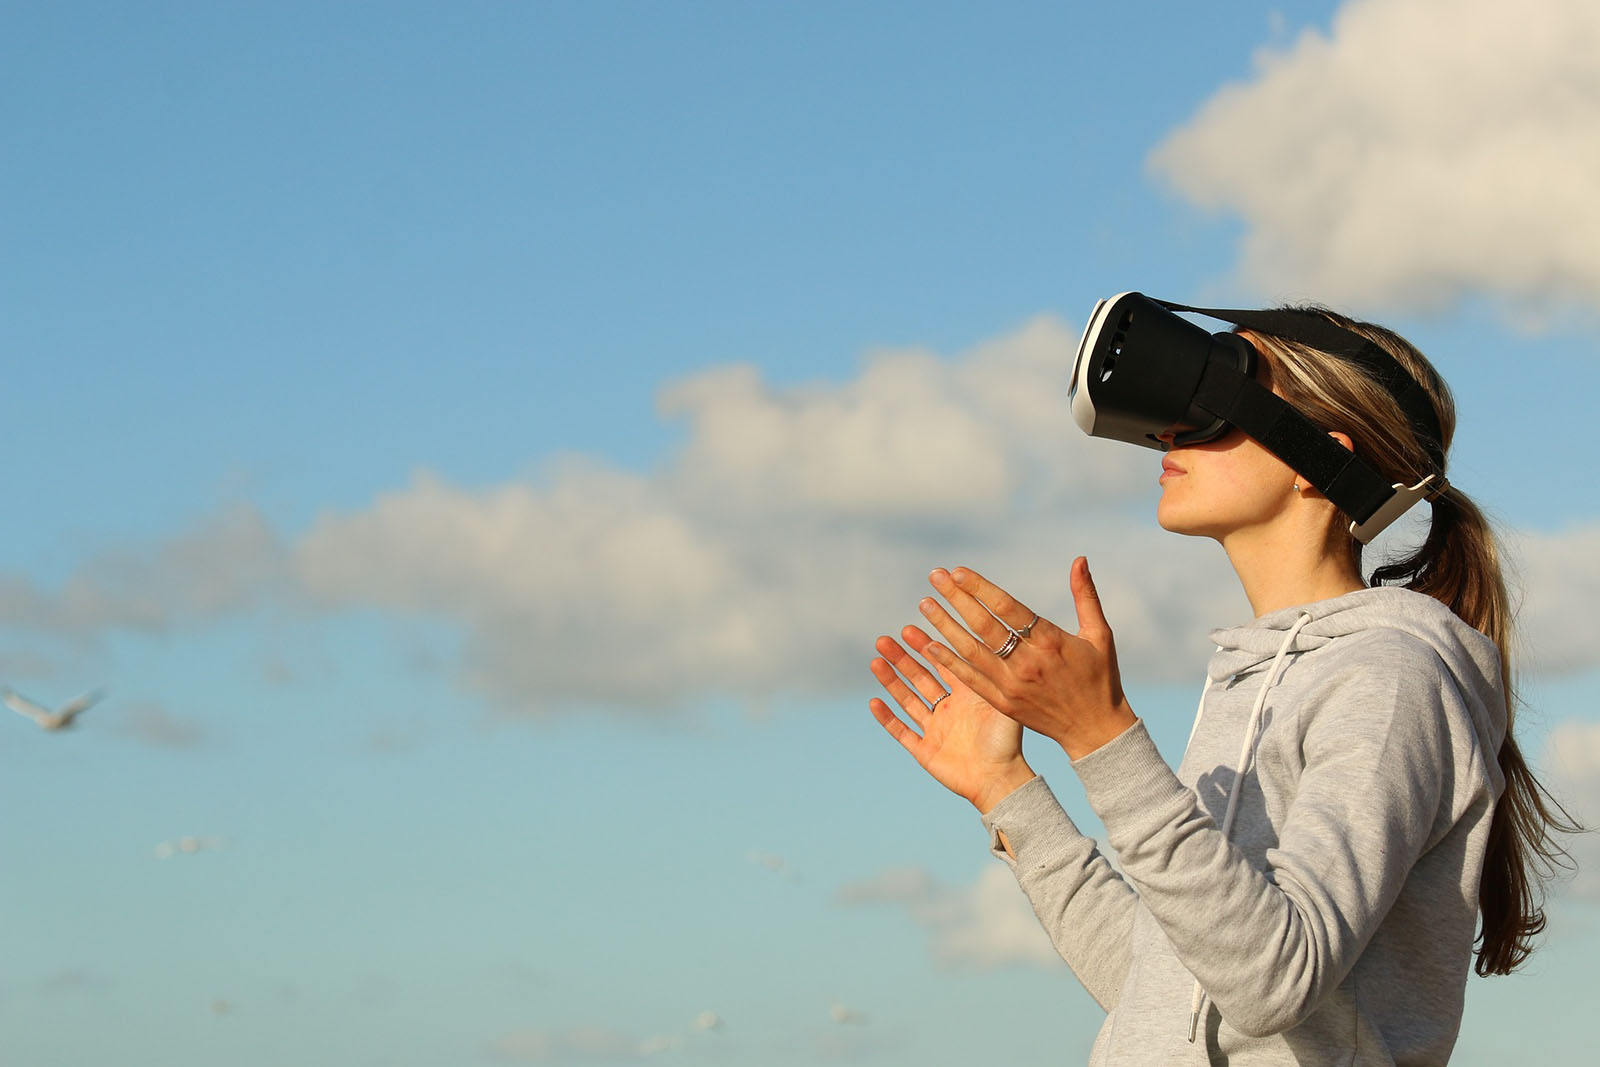 A woman wearing a virtual reality headset on a backdrop of a cloudy blue sky.